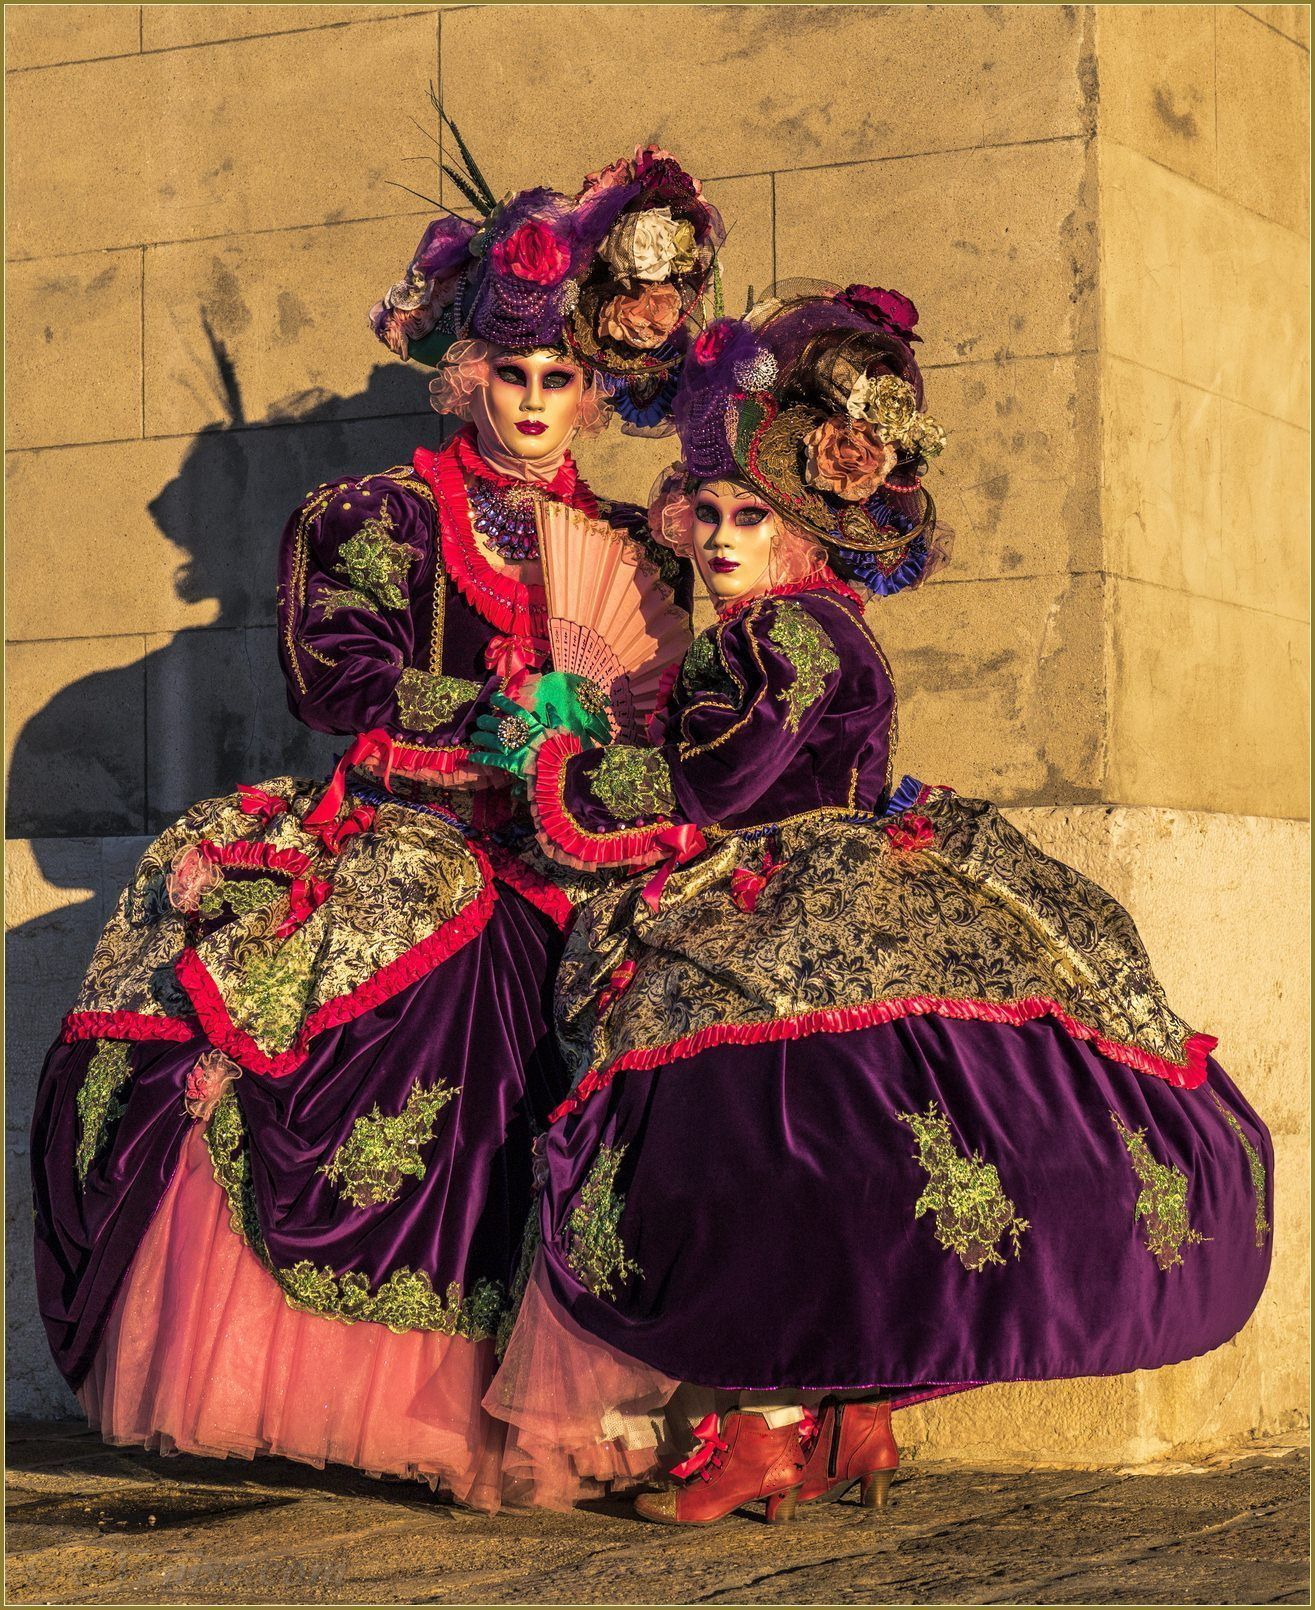 Carnaval Venise 2016 Masques Costumes   page 43